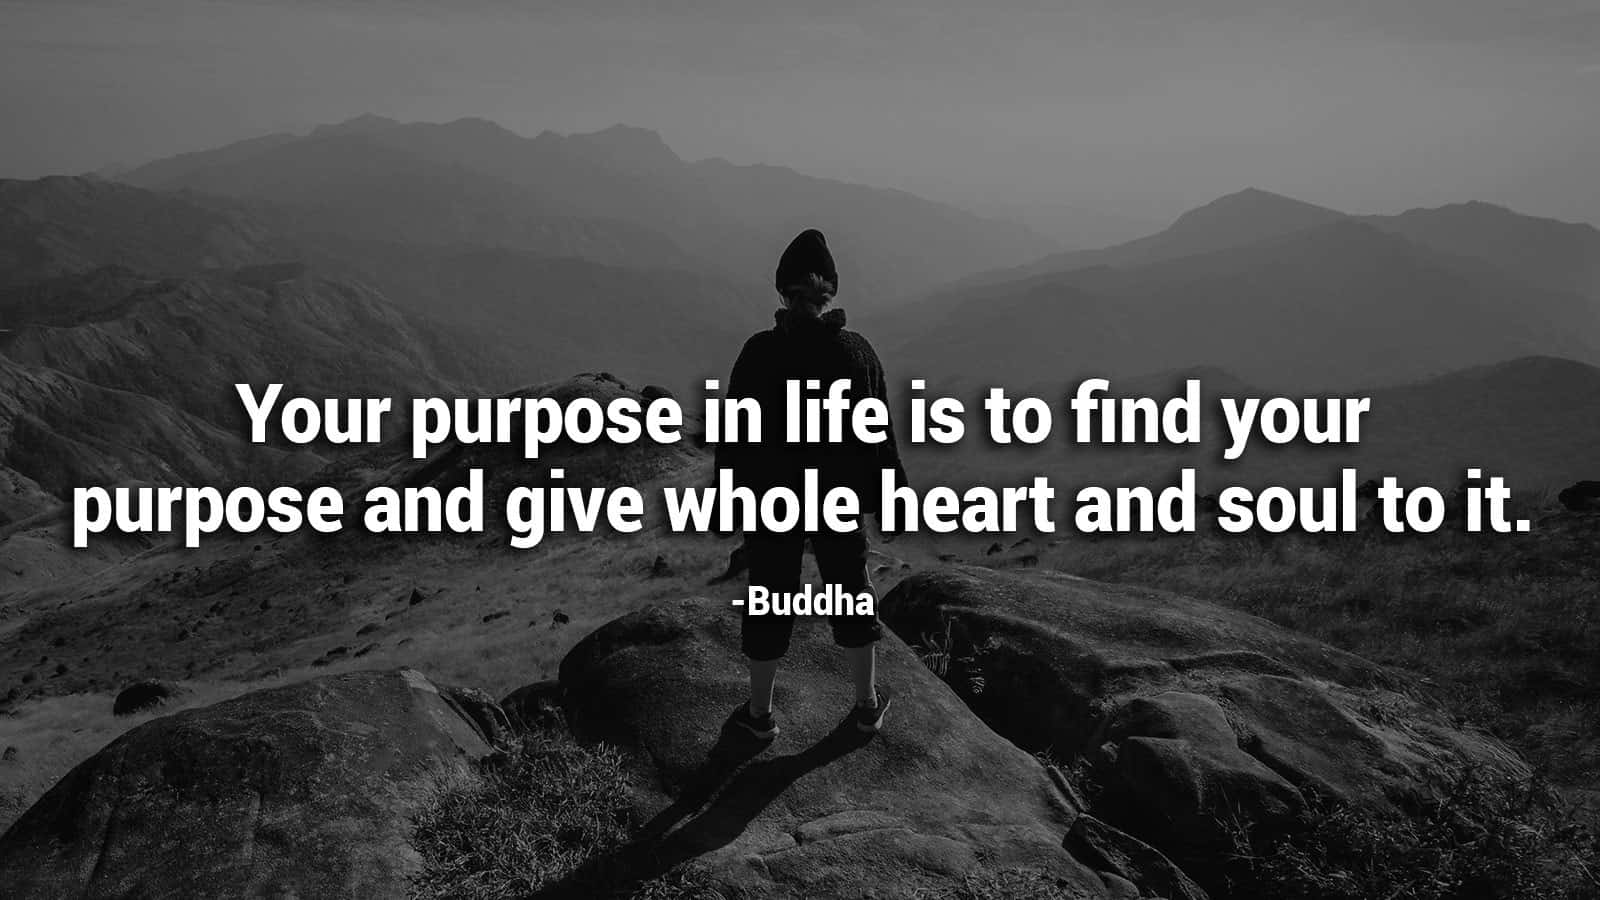 6 Quotes From Buddha That Have The Power To Transform Your Life